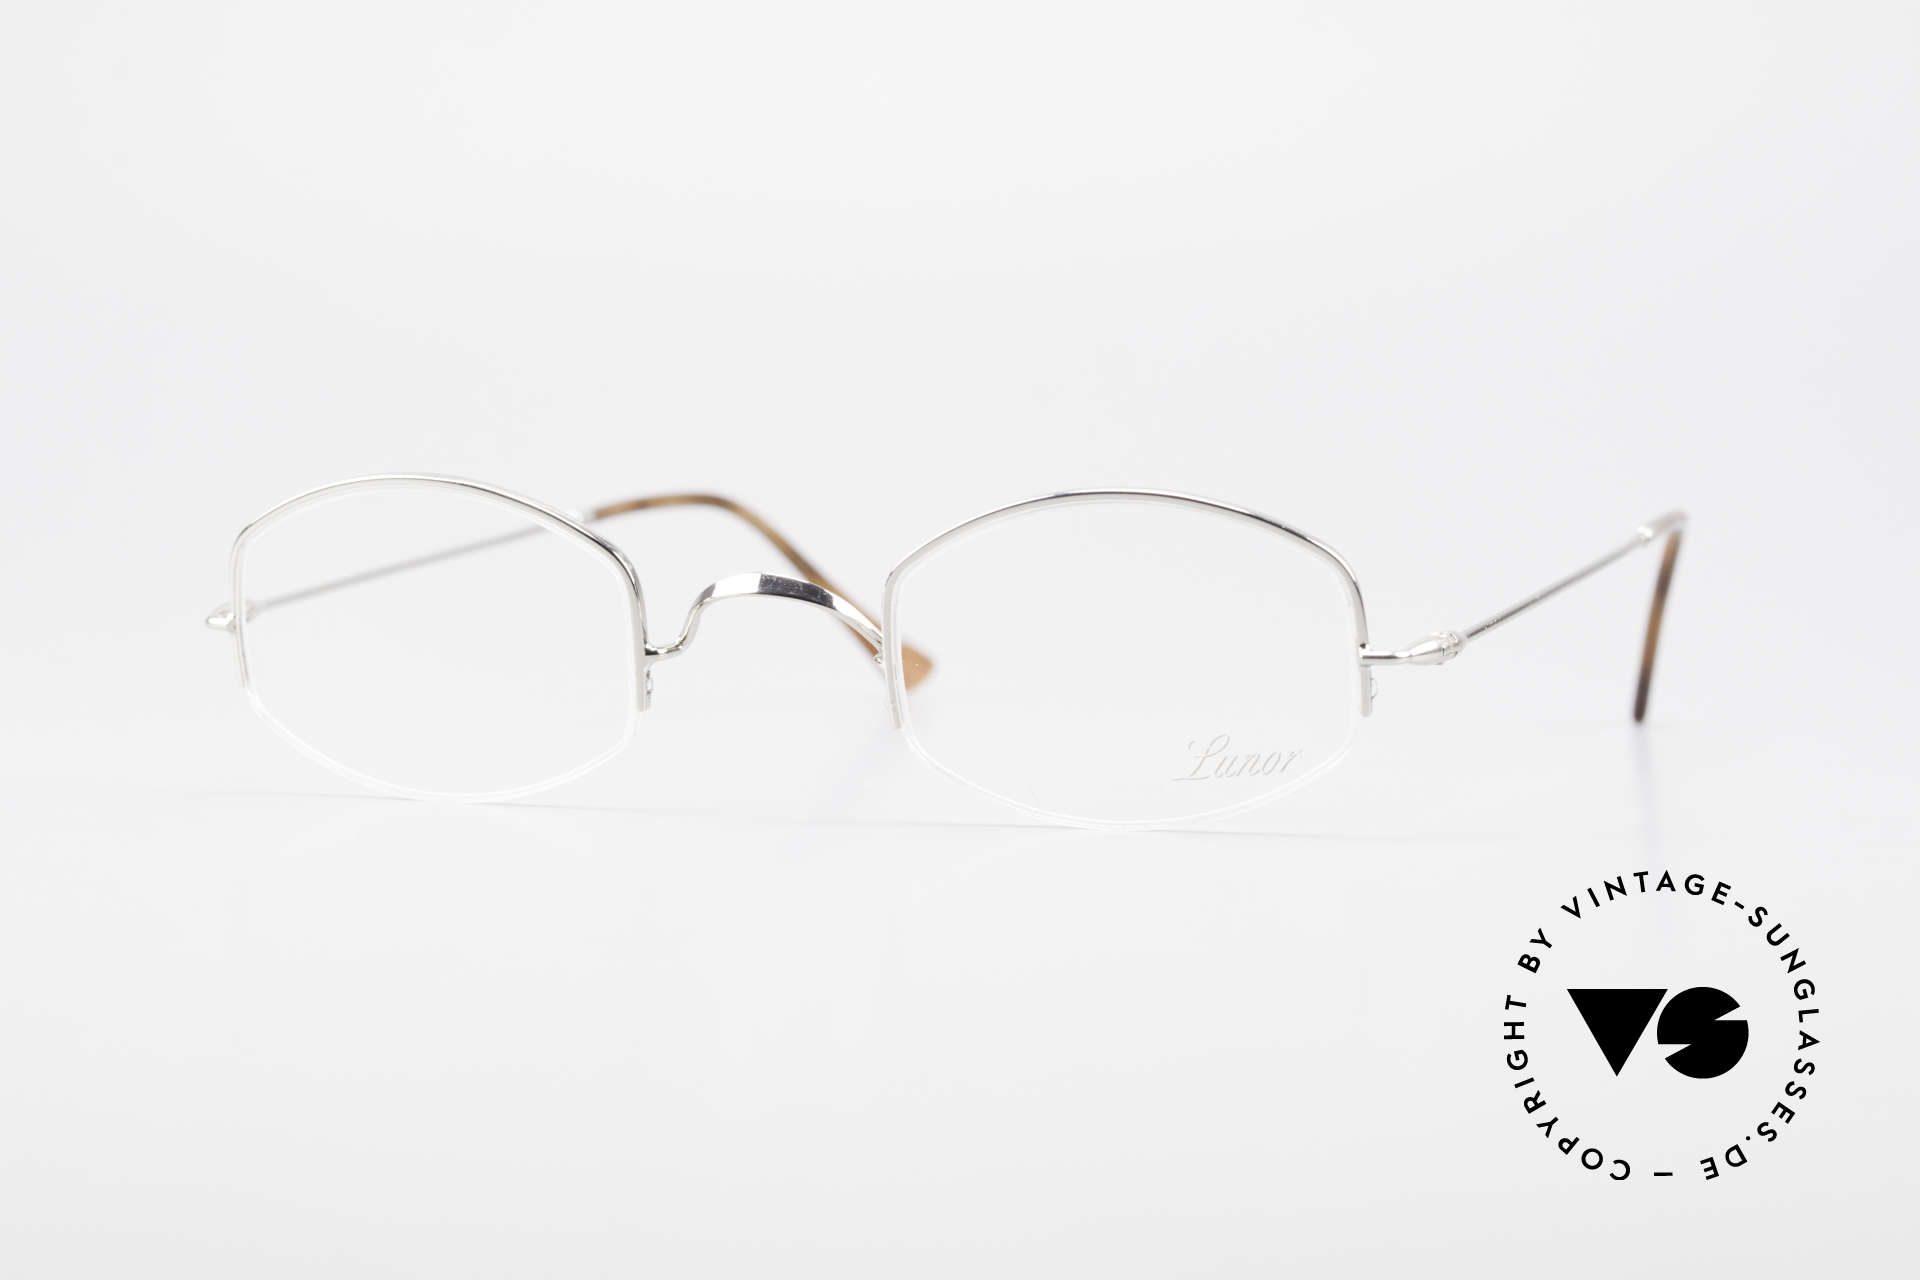 """Lunor Classic Semi Rimless Vintage Frame, LUNOR: shortcut for French """"Lunette d'Or"""" (gold glasses), Made for Men and Women"""